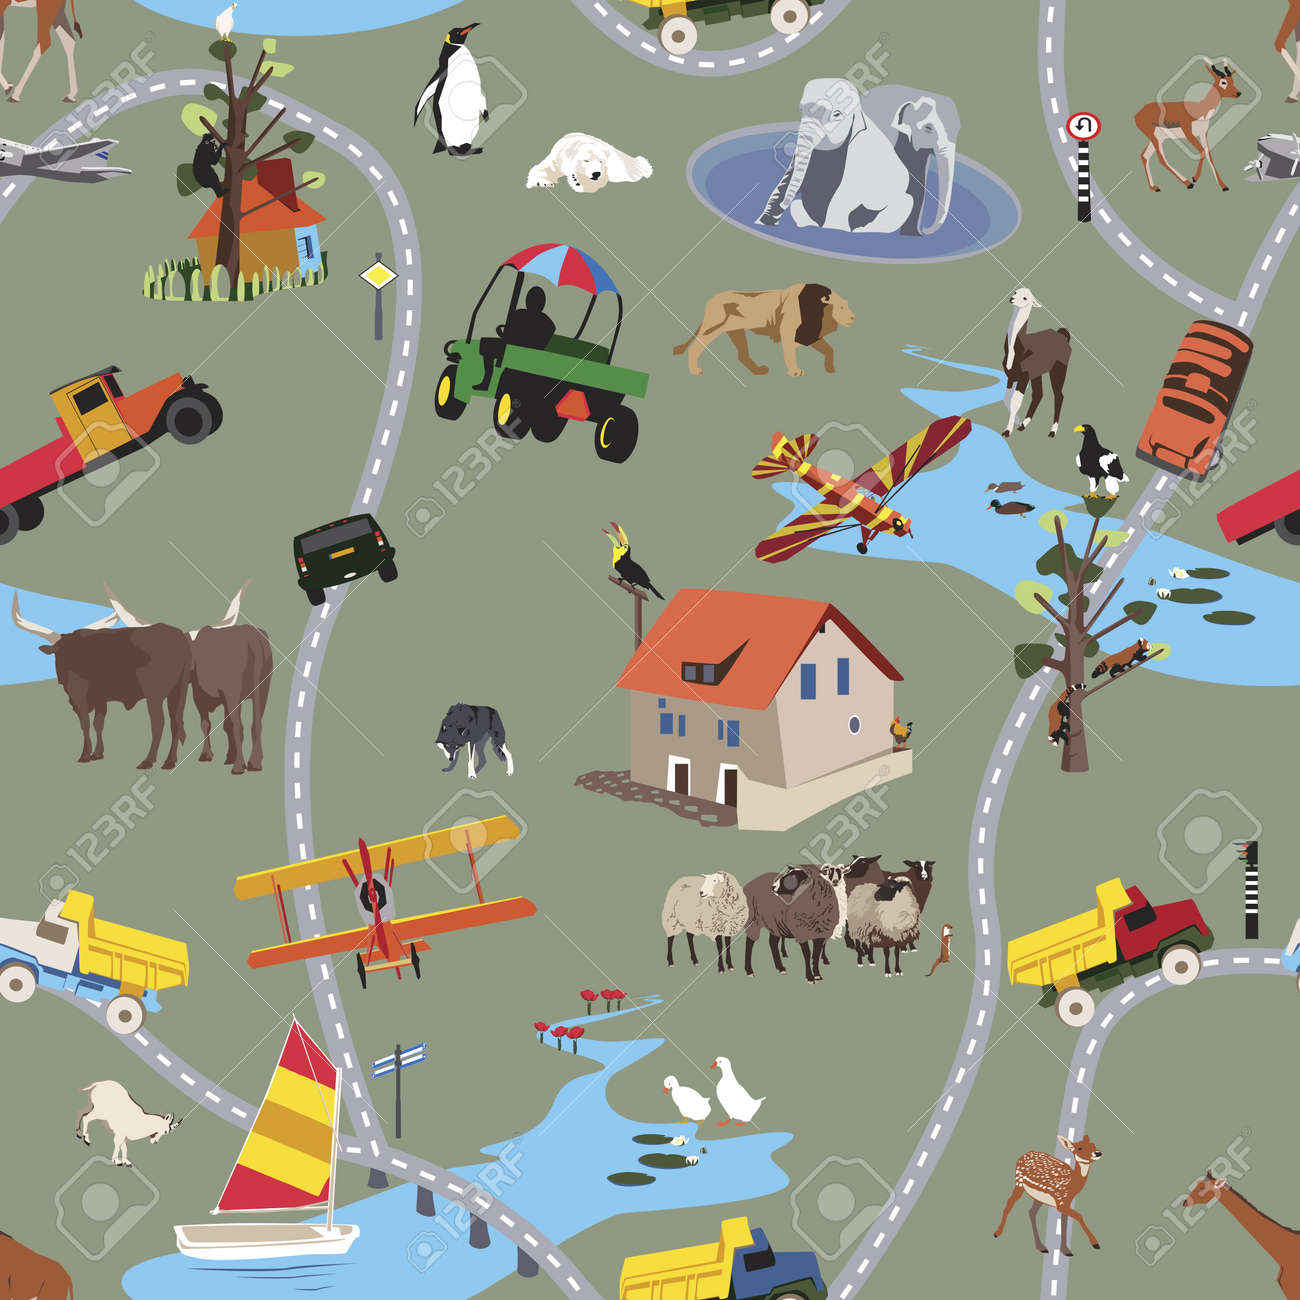 Big World For Little People - Seamless Pattern Stock Vector - 9346971